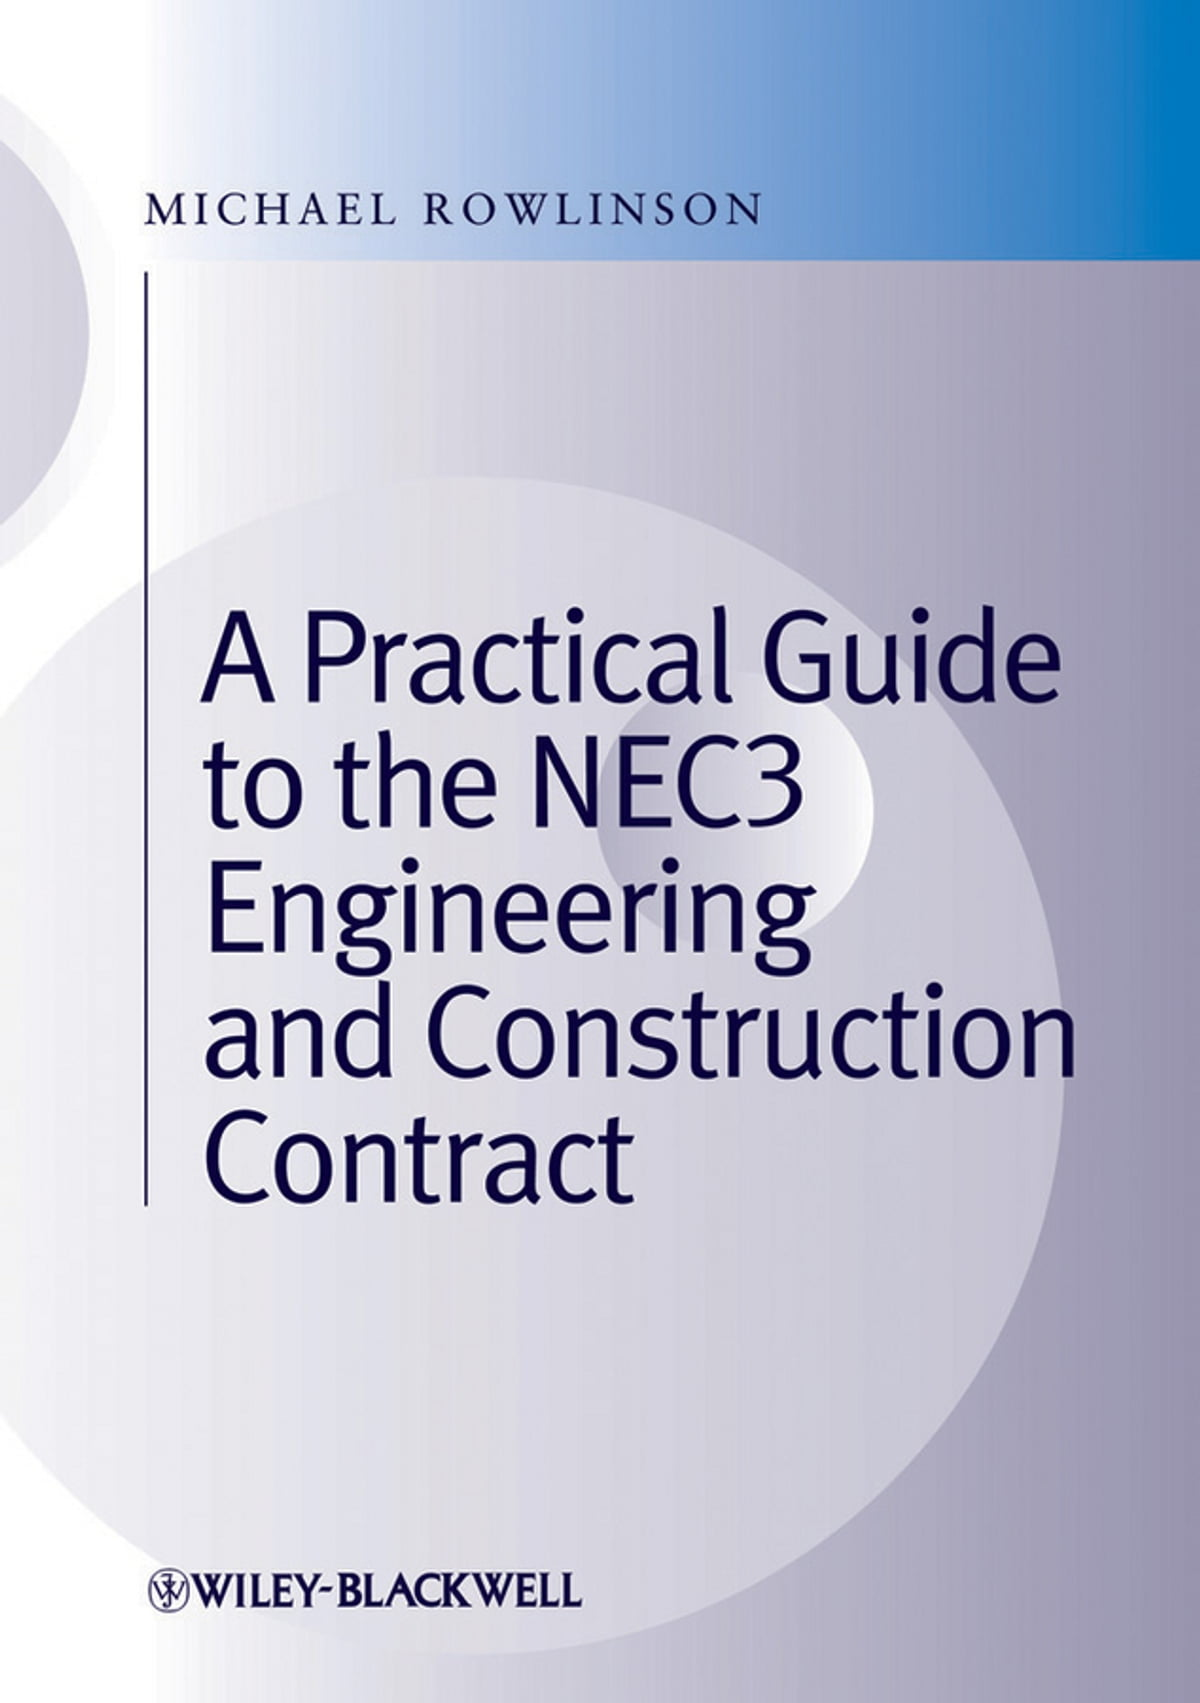 A Practical Guide to the NEC3 Engineering and Construction Contract eBook  by Michael Rowlinson - 9781444340174 | Rakuten Kobo